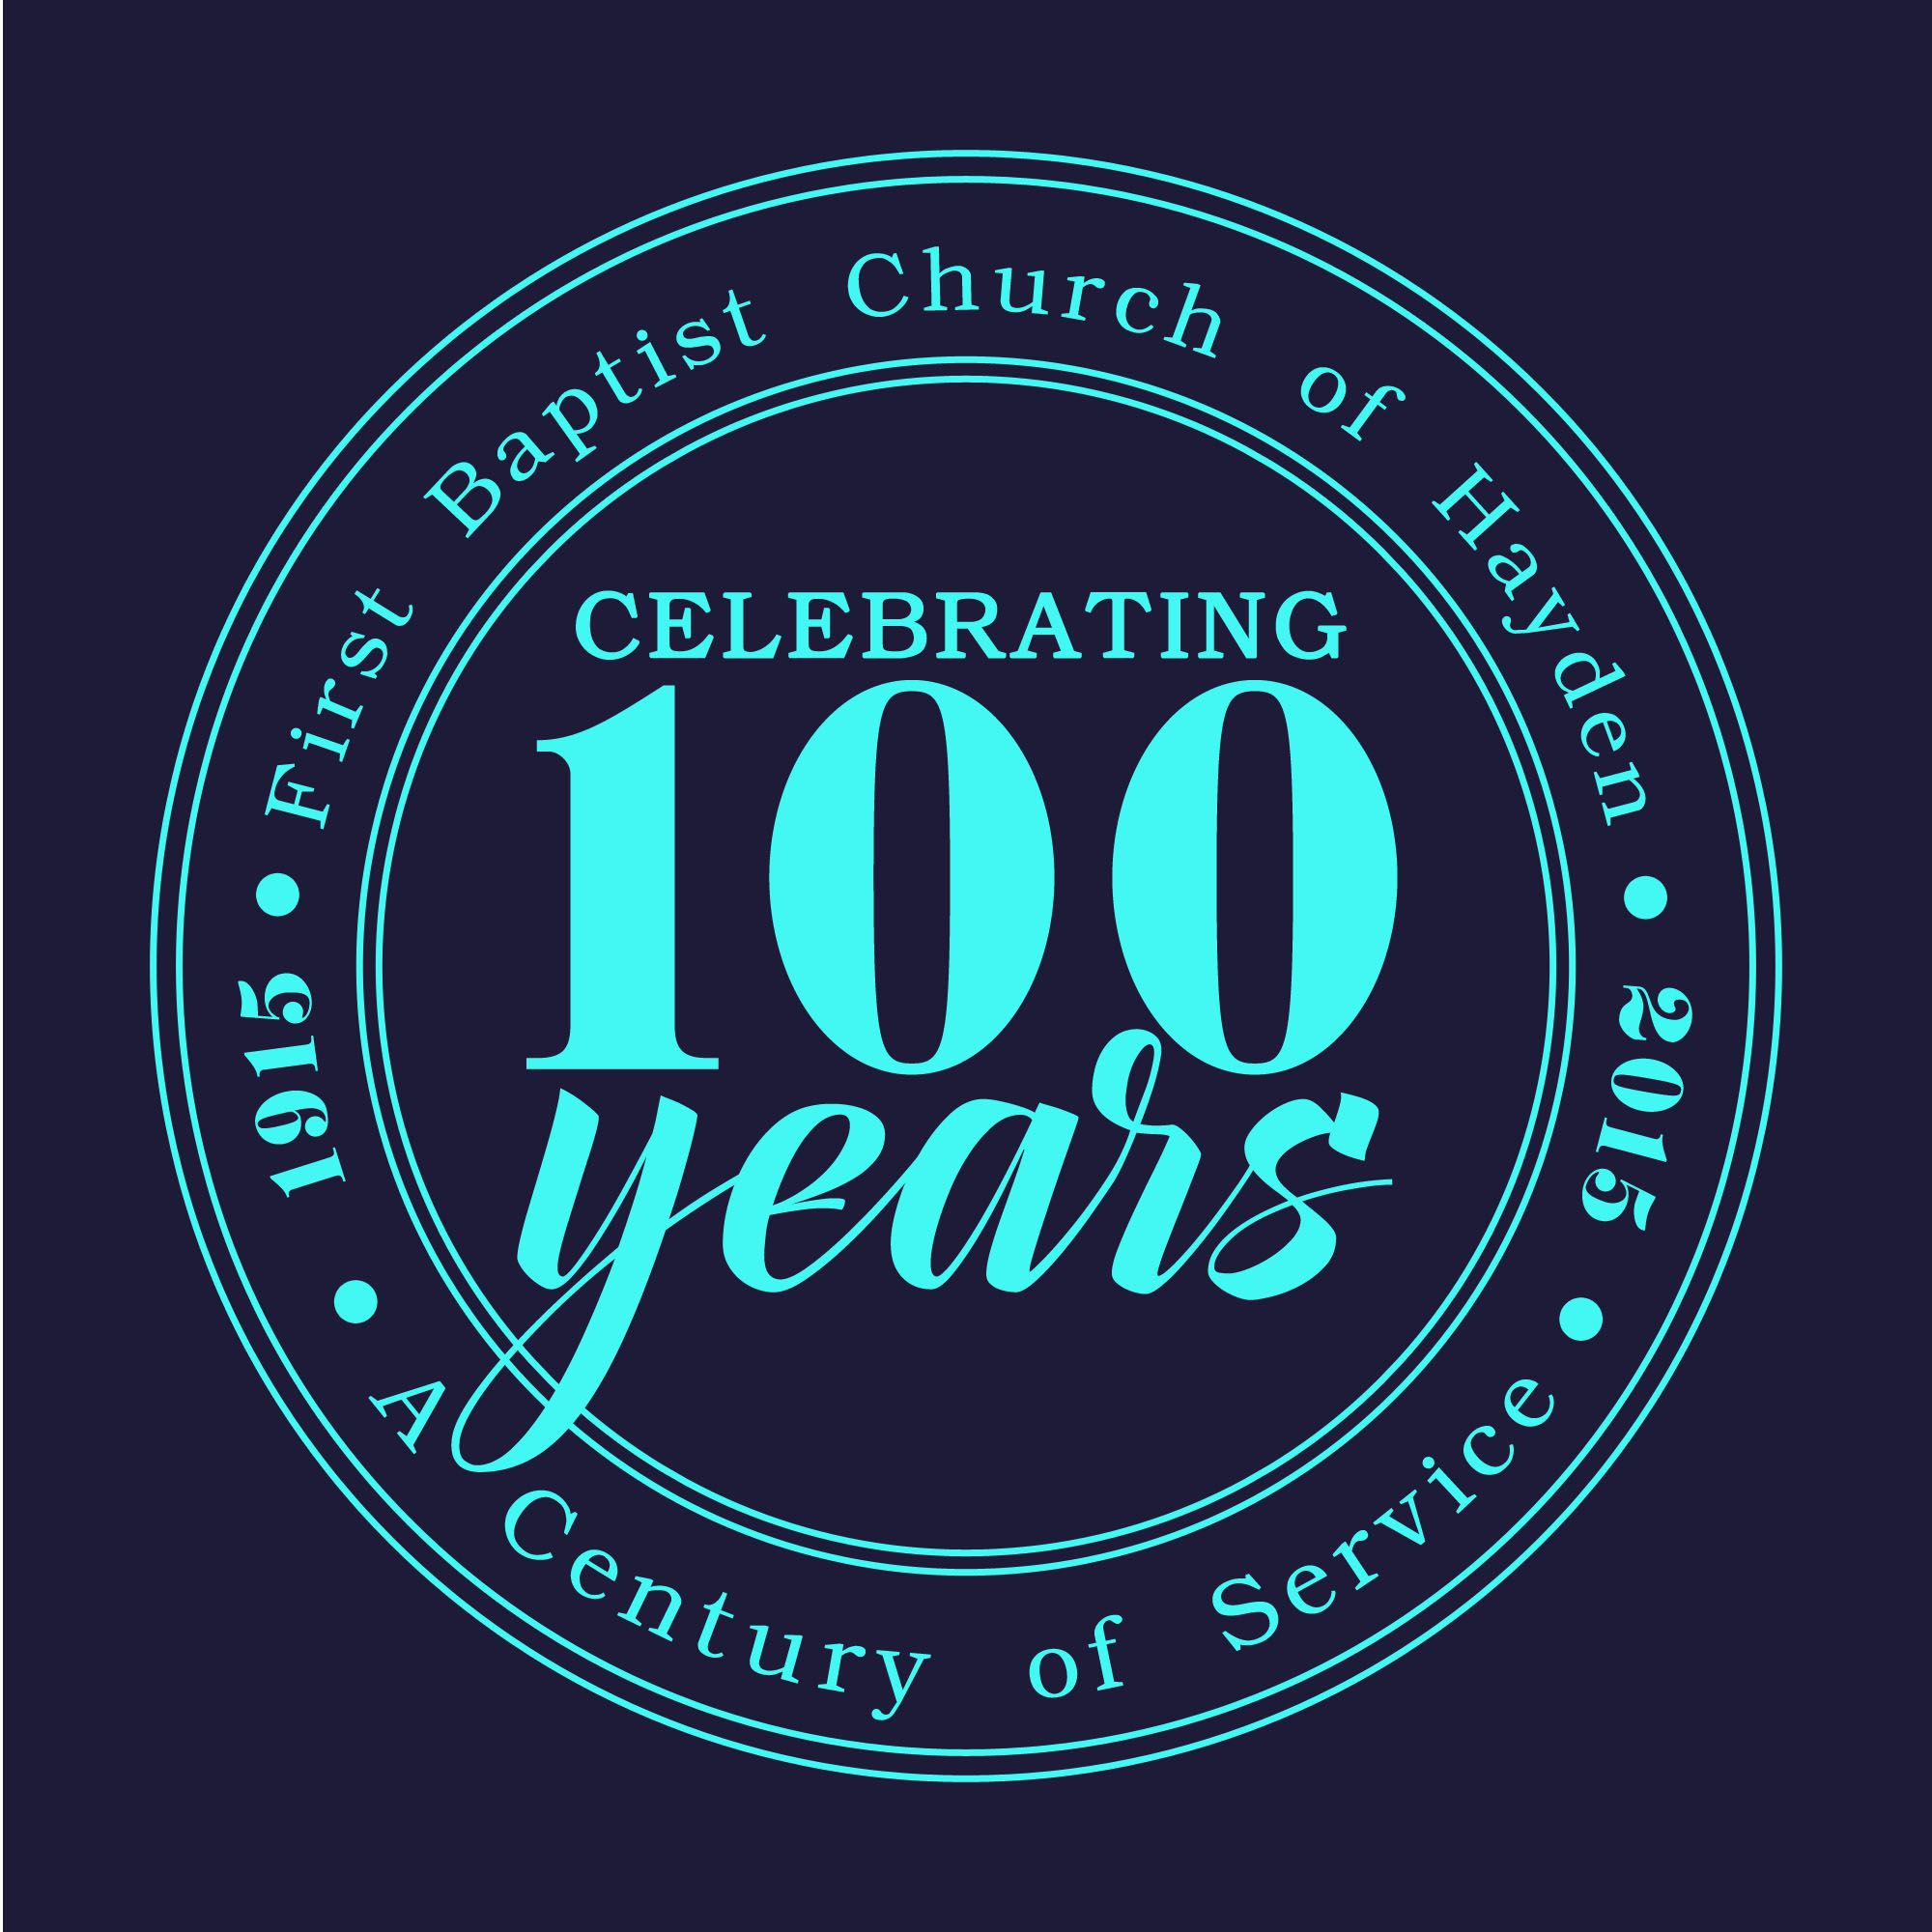 100 year anniversary clipart picture freeuse 100 Year Church Anniversary Clipart & Free Clip Art Images #11362 ... picture freeuse